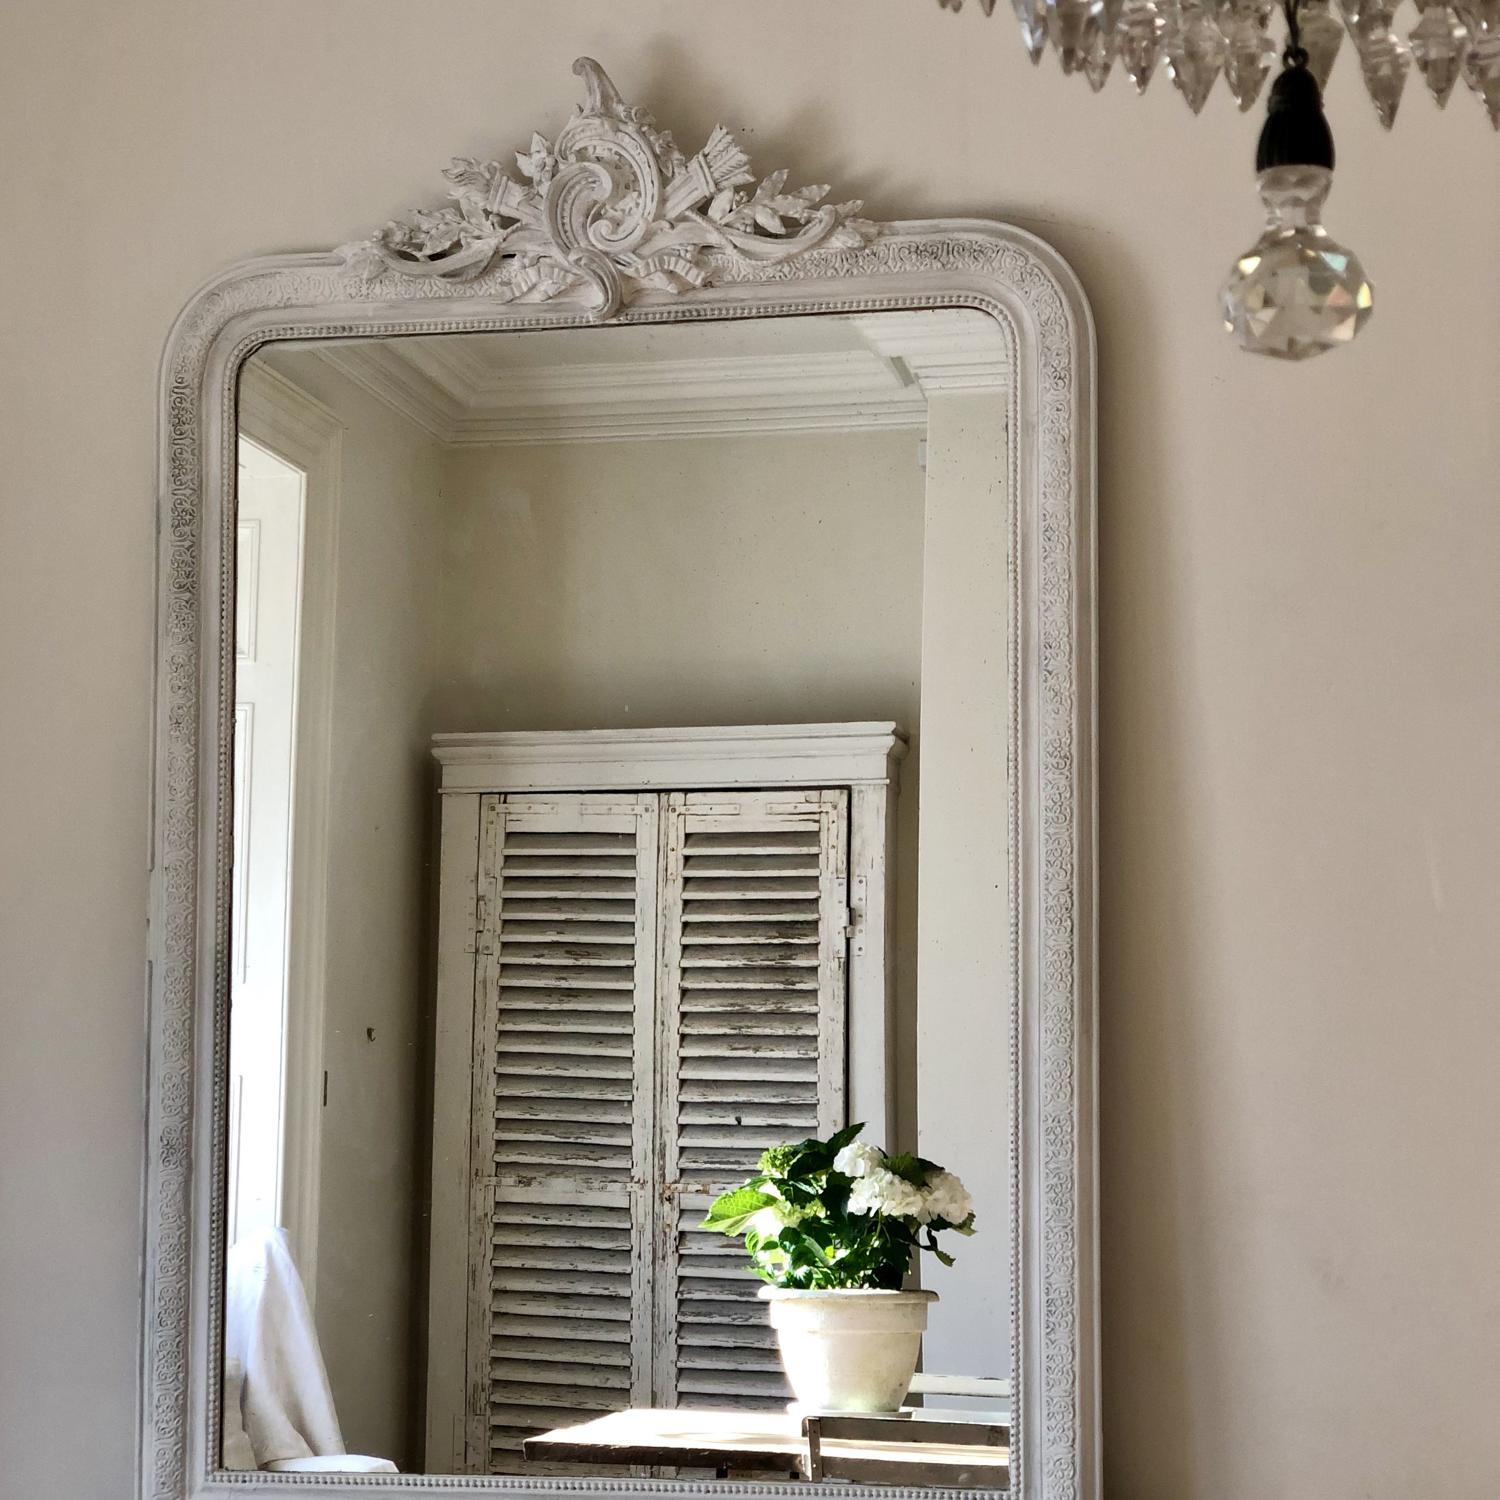 Huge crested 19th century French antique painted leaner mirror